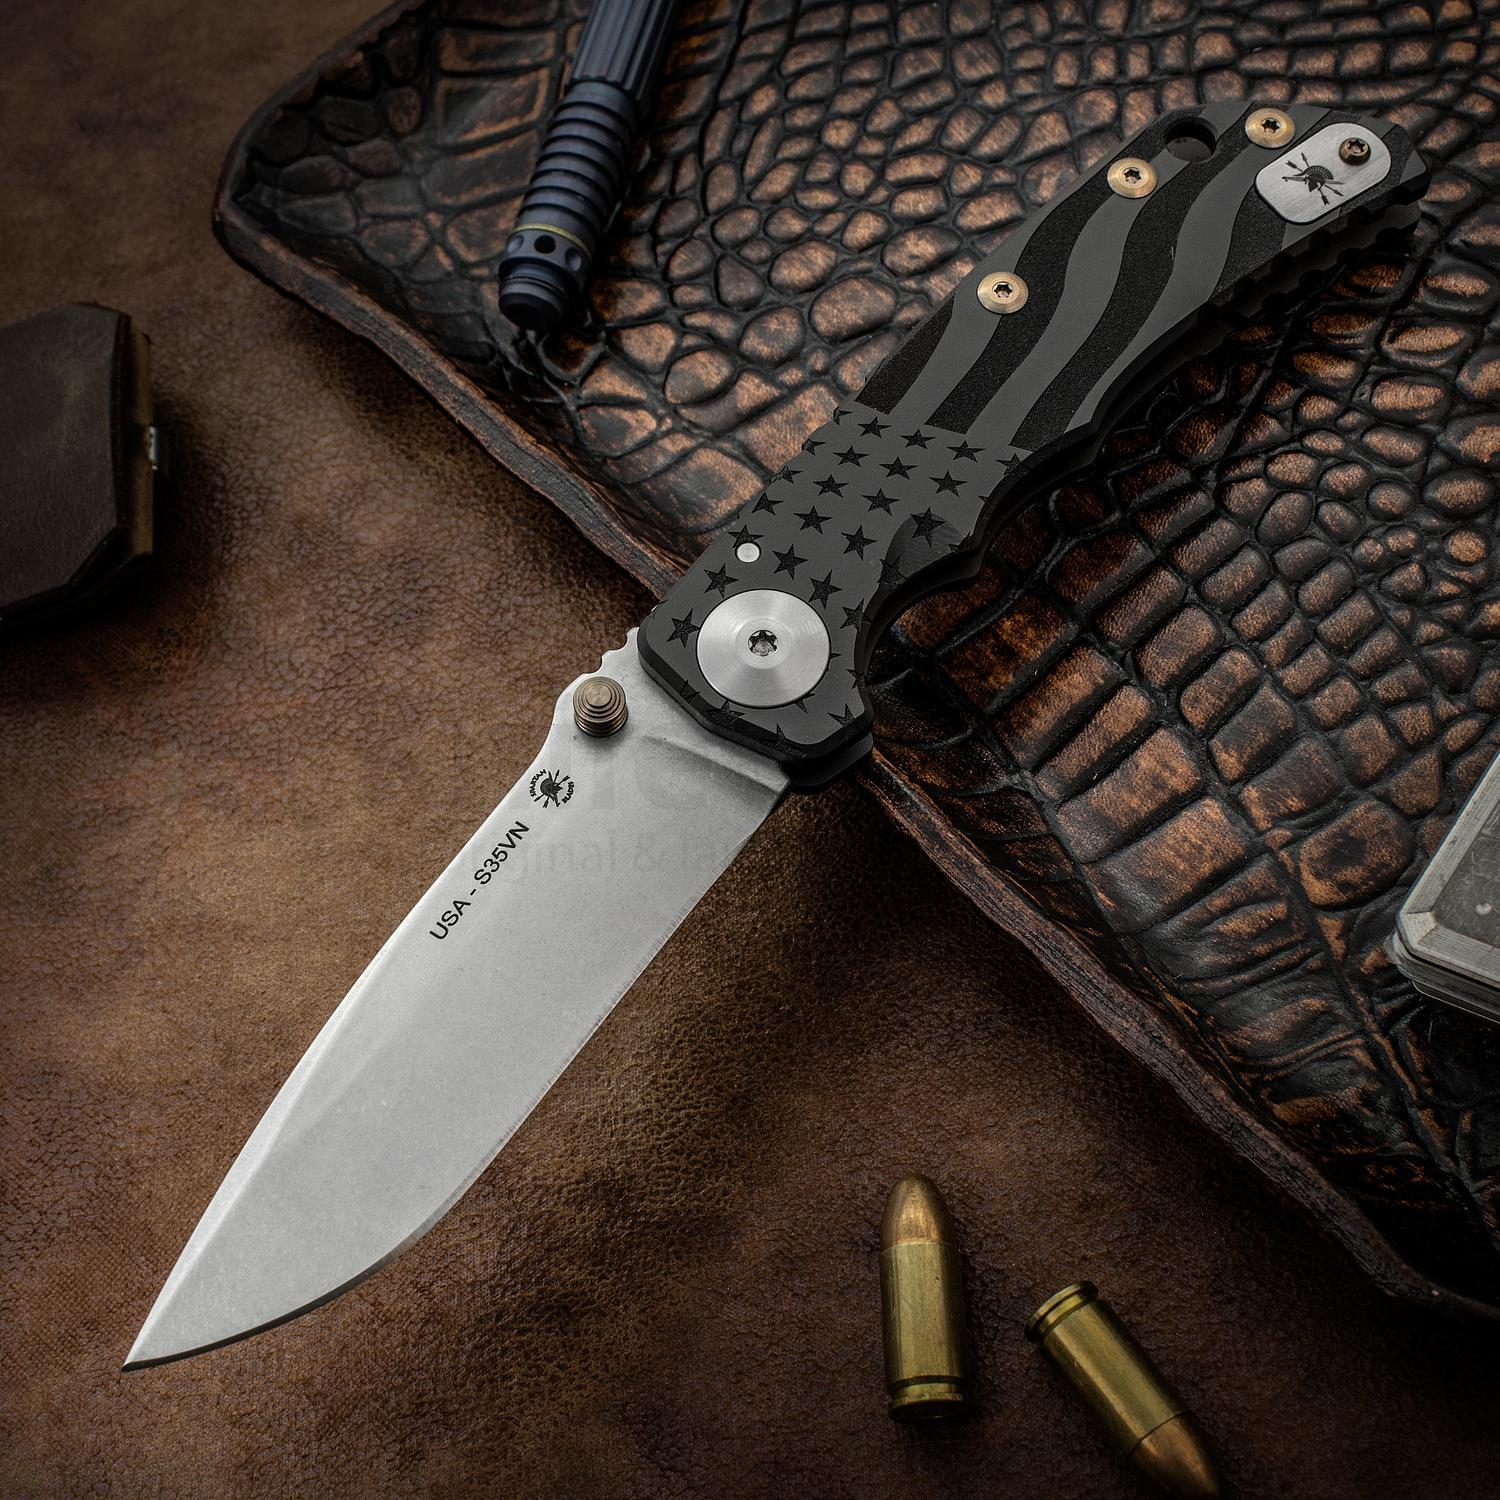 Нож складной Spartan Harsey Folder, Stonewashed Crucible CPM® S35VN™ Blade, Black PVD-Coating Titanium Handles with USA Flag Engraved, Bronze Anodized Hardware 10.0 см.Раскладные ножи<br>Нож складной Spartan Harsey Folder, Stonewashed Crucible CPM® S35VN™ Blade, Black PVD-Coating Titanium Handles with USA Flag Engraved, Bronze Anodized Hardware 10.0 см.<br>